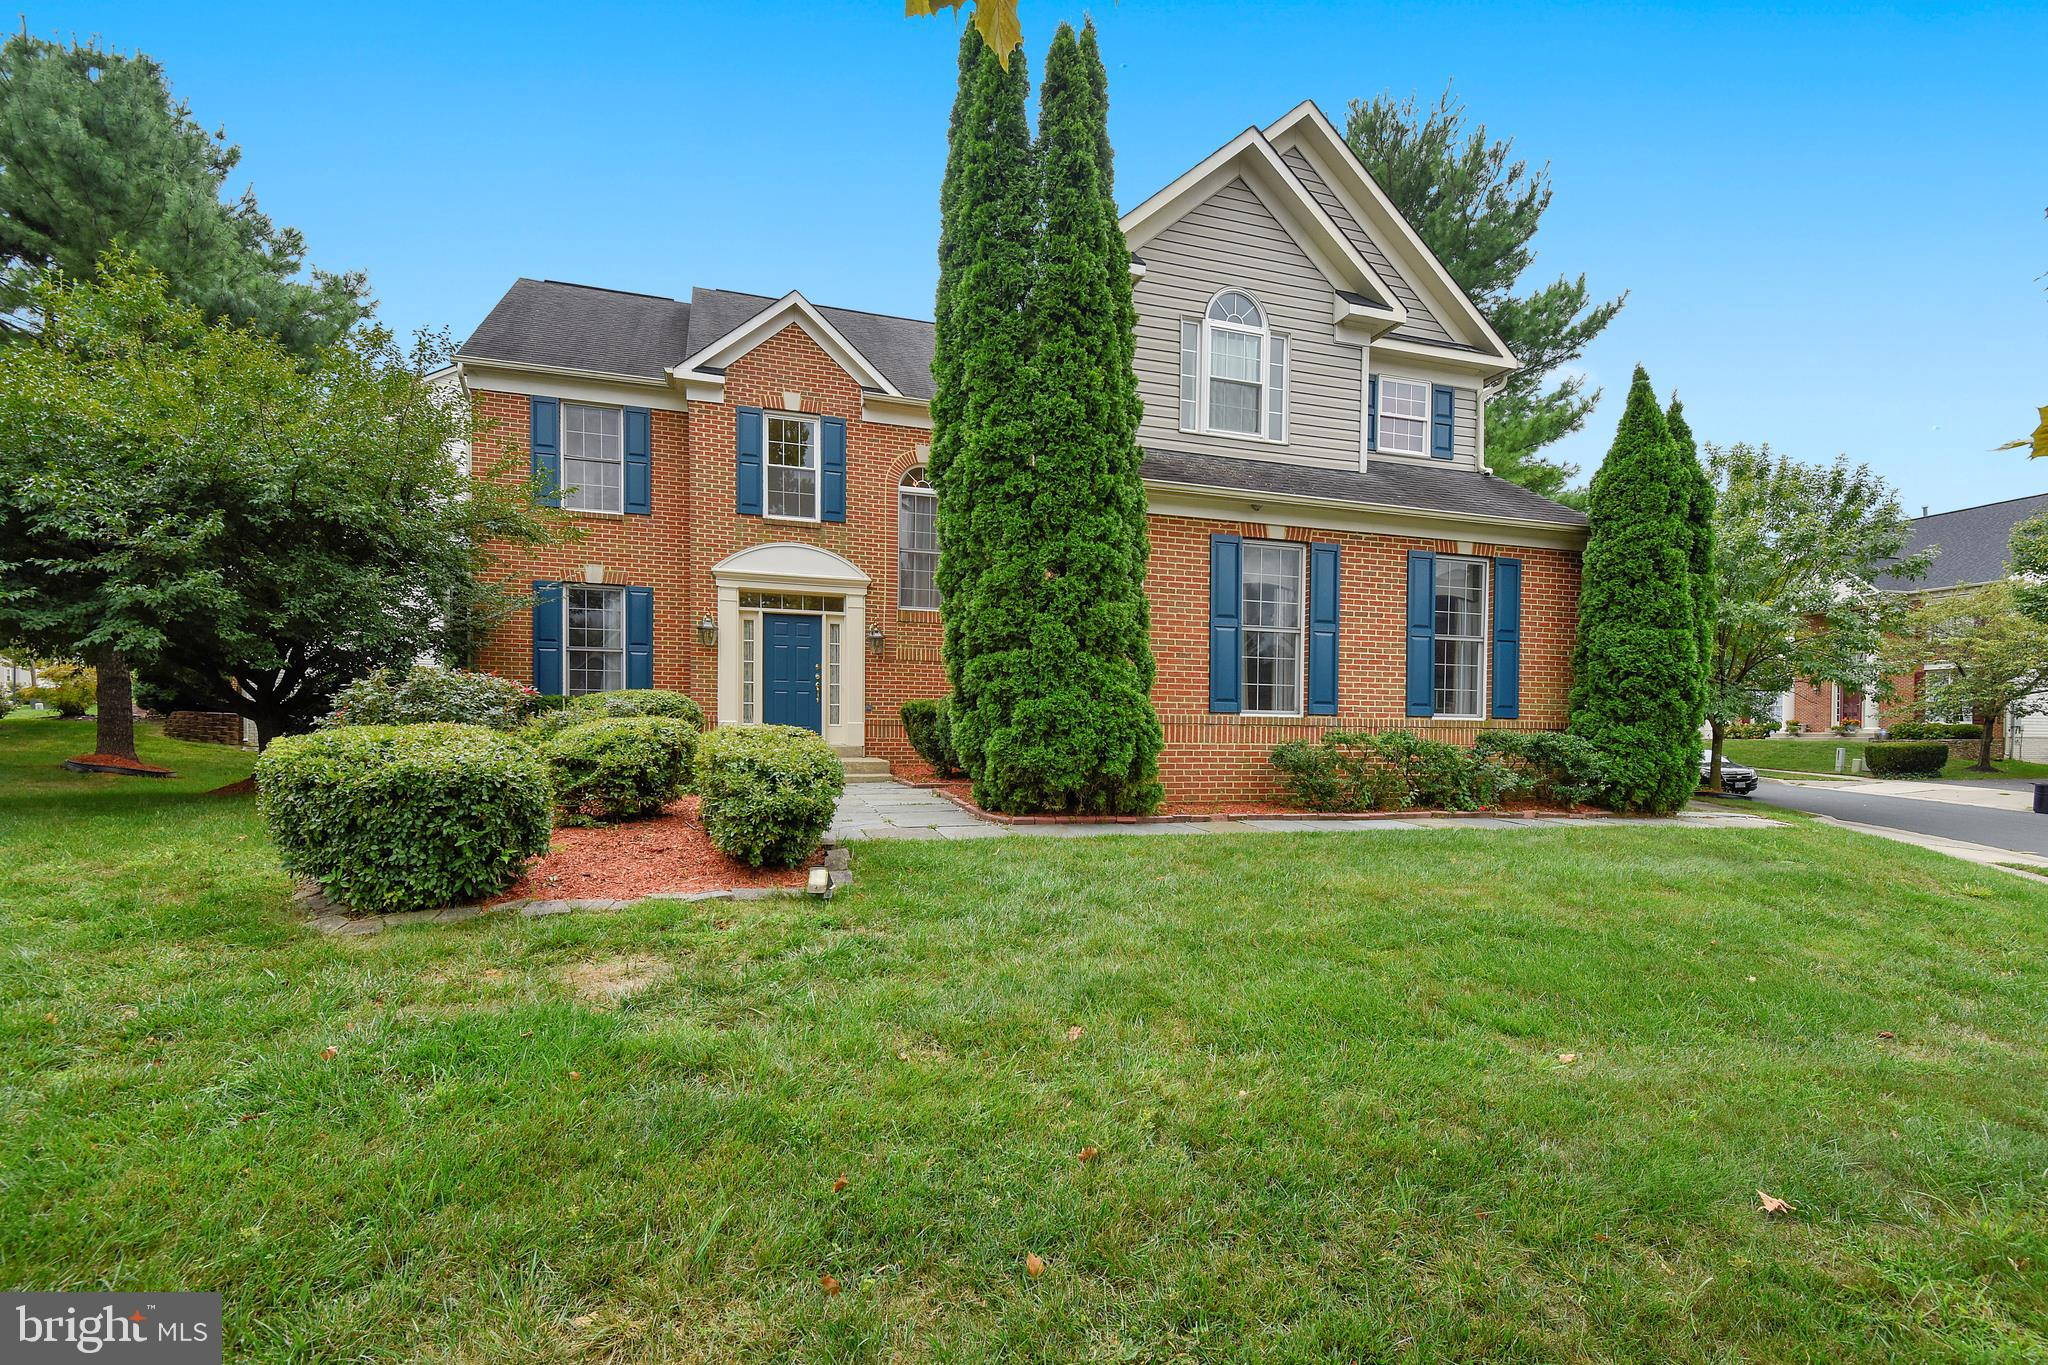 20912 TALL FOREST DRIVE, GERMANTOWN, MD 20876